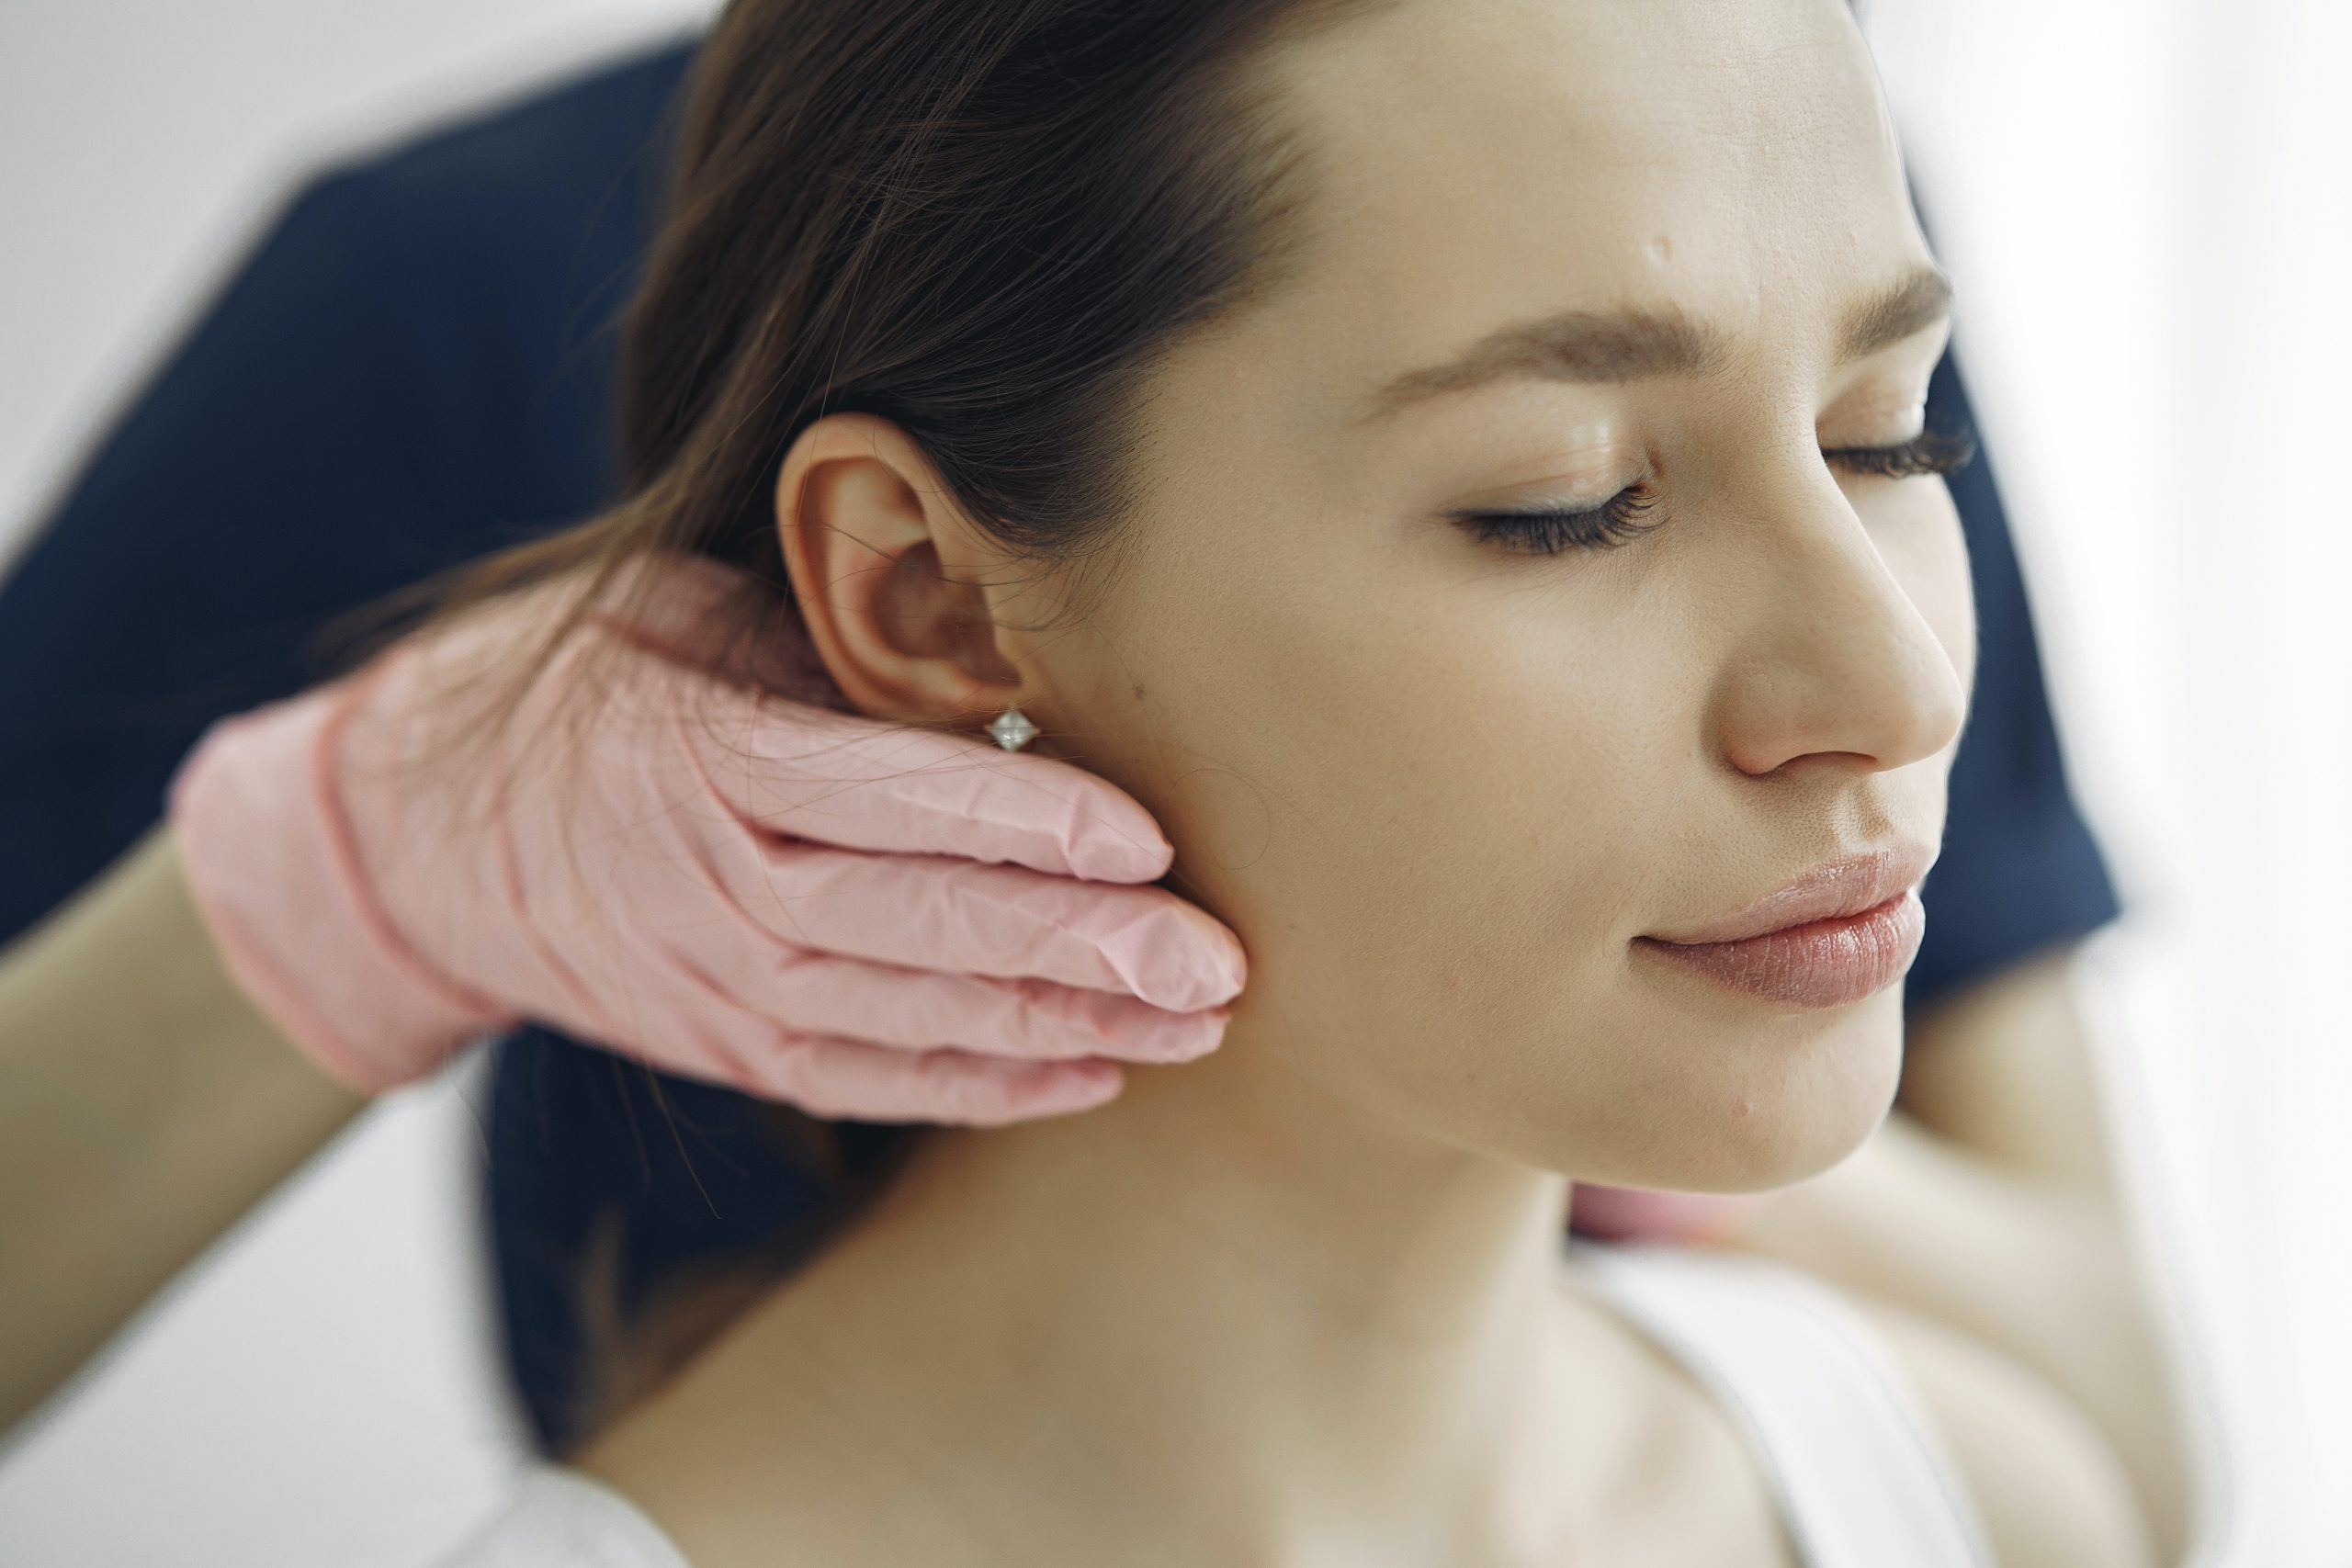 woman with eyes closed has her glands checked by professional